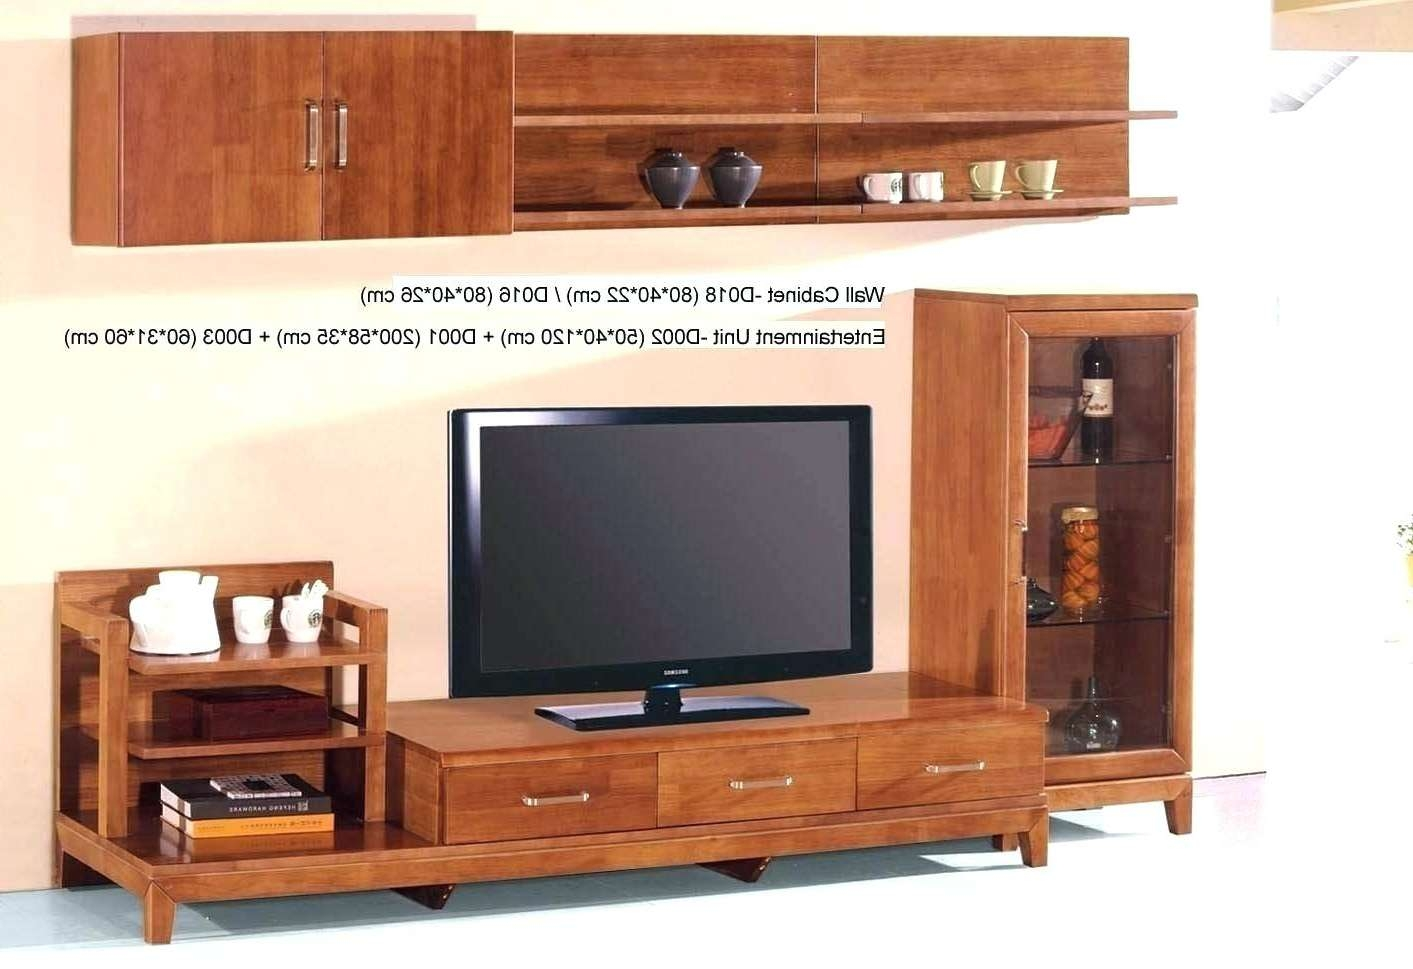 Tv Stand : Country Style Tv Stand Bright Unit Idea In Honey Oak Intended For Country Style Tv Stands (View 12 of 15)